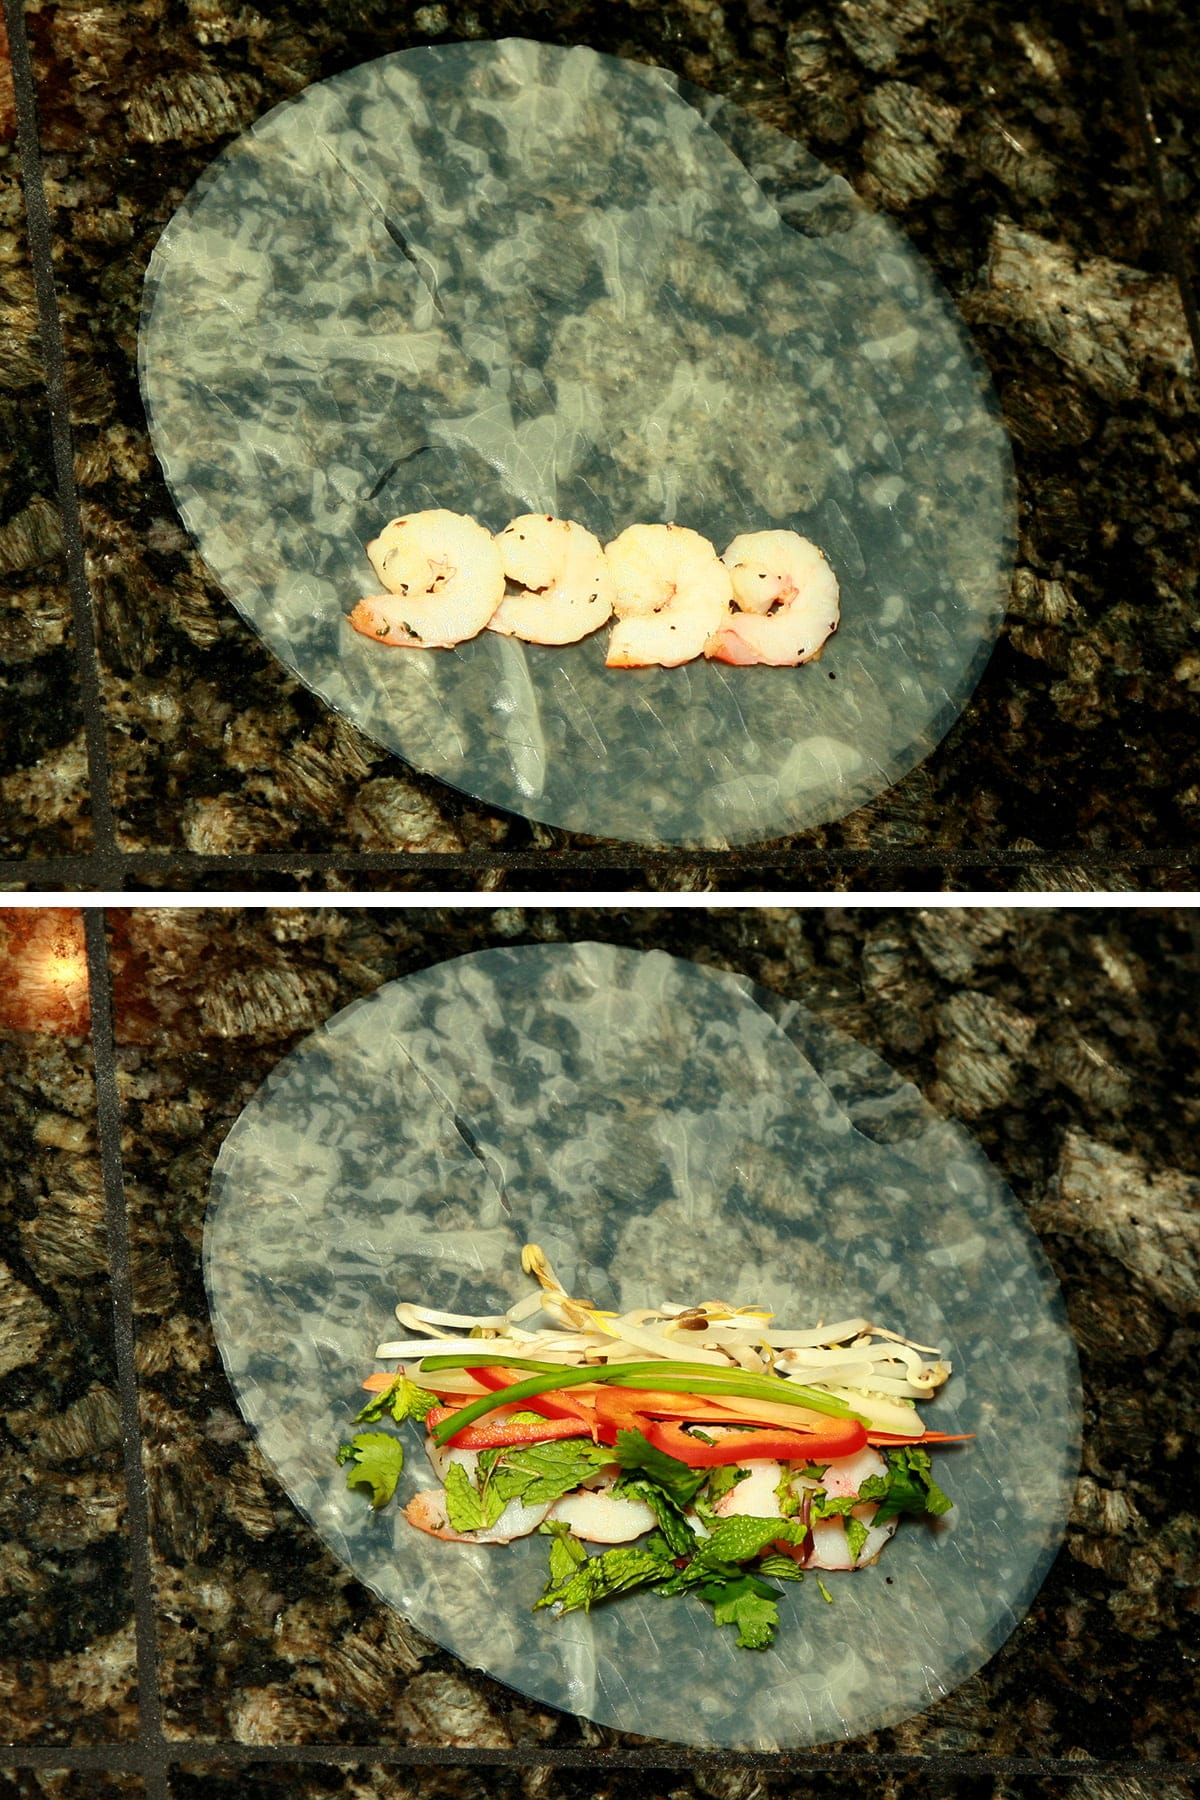 A two part compilation image. The top image shows shrimp lined up on a soaked rice wrapper. The bottom shows the shrimp topped with bean sprouts, red pepper, green onion, and carrot.